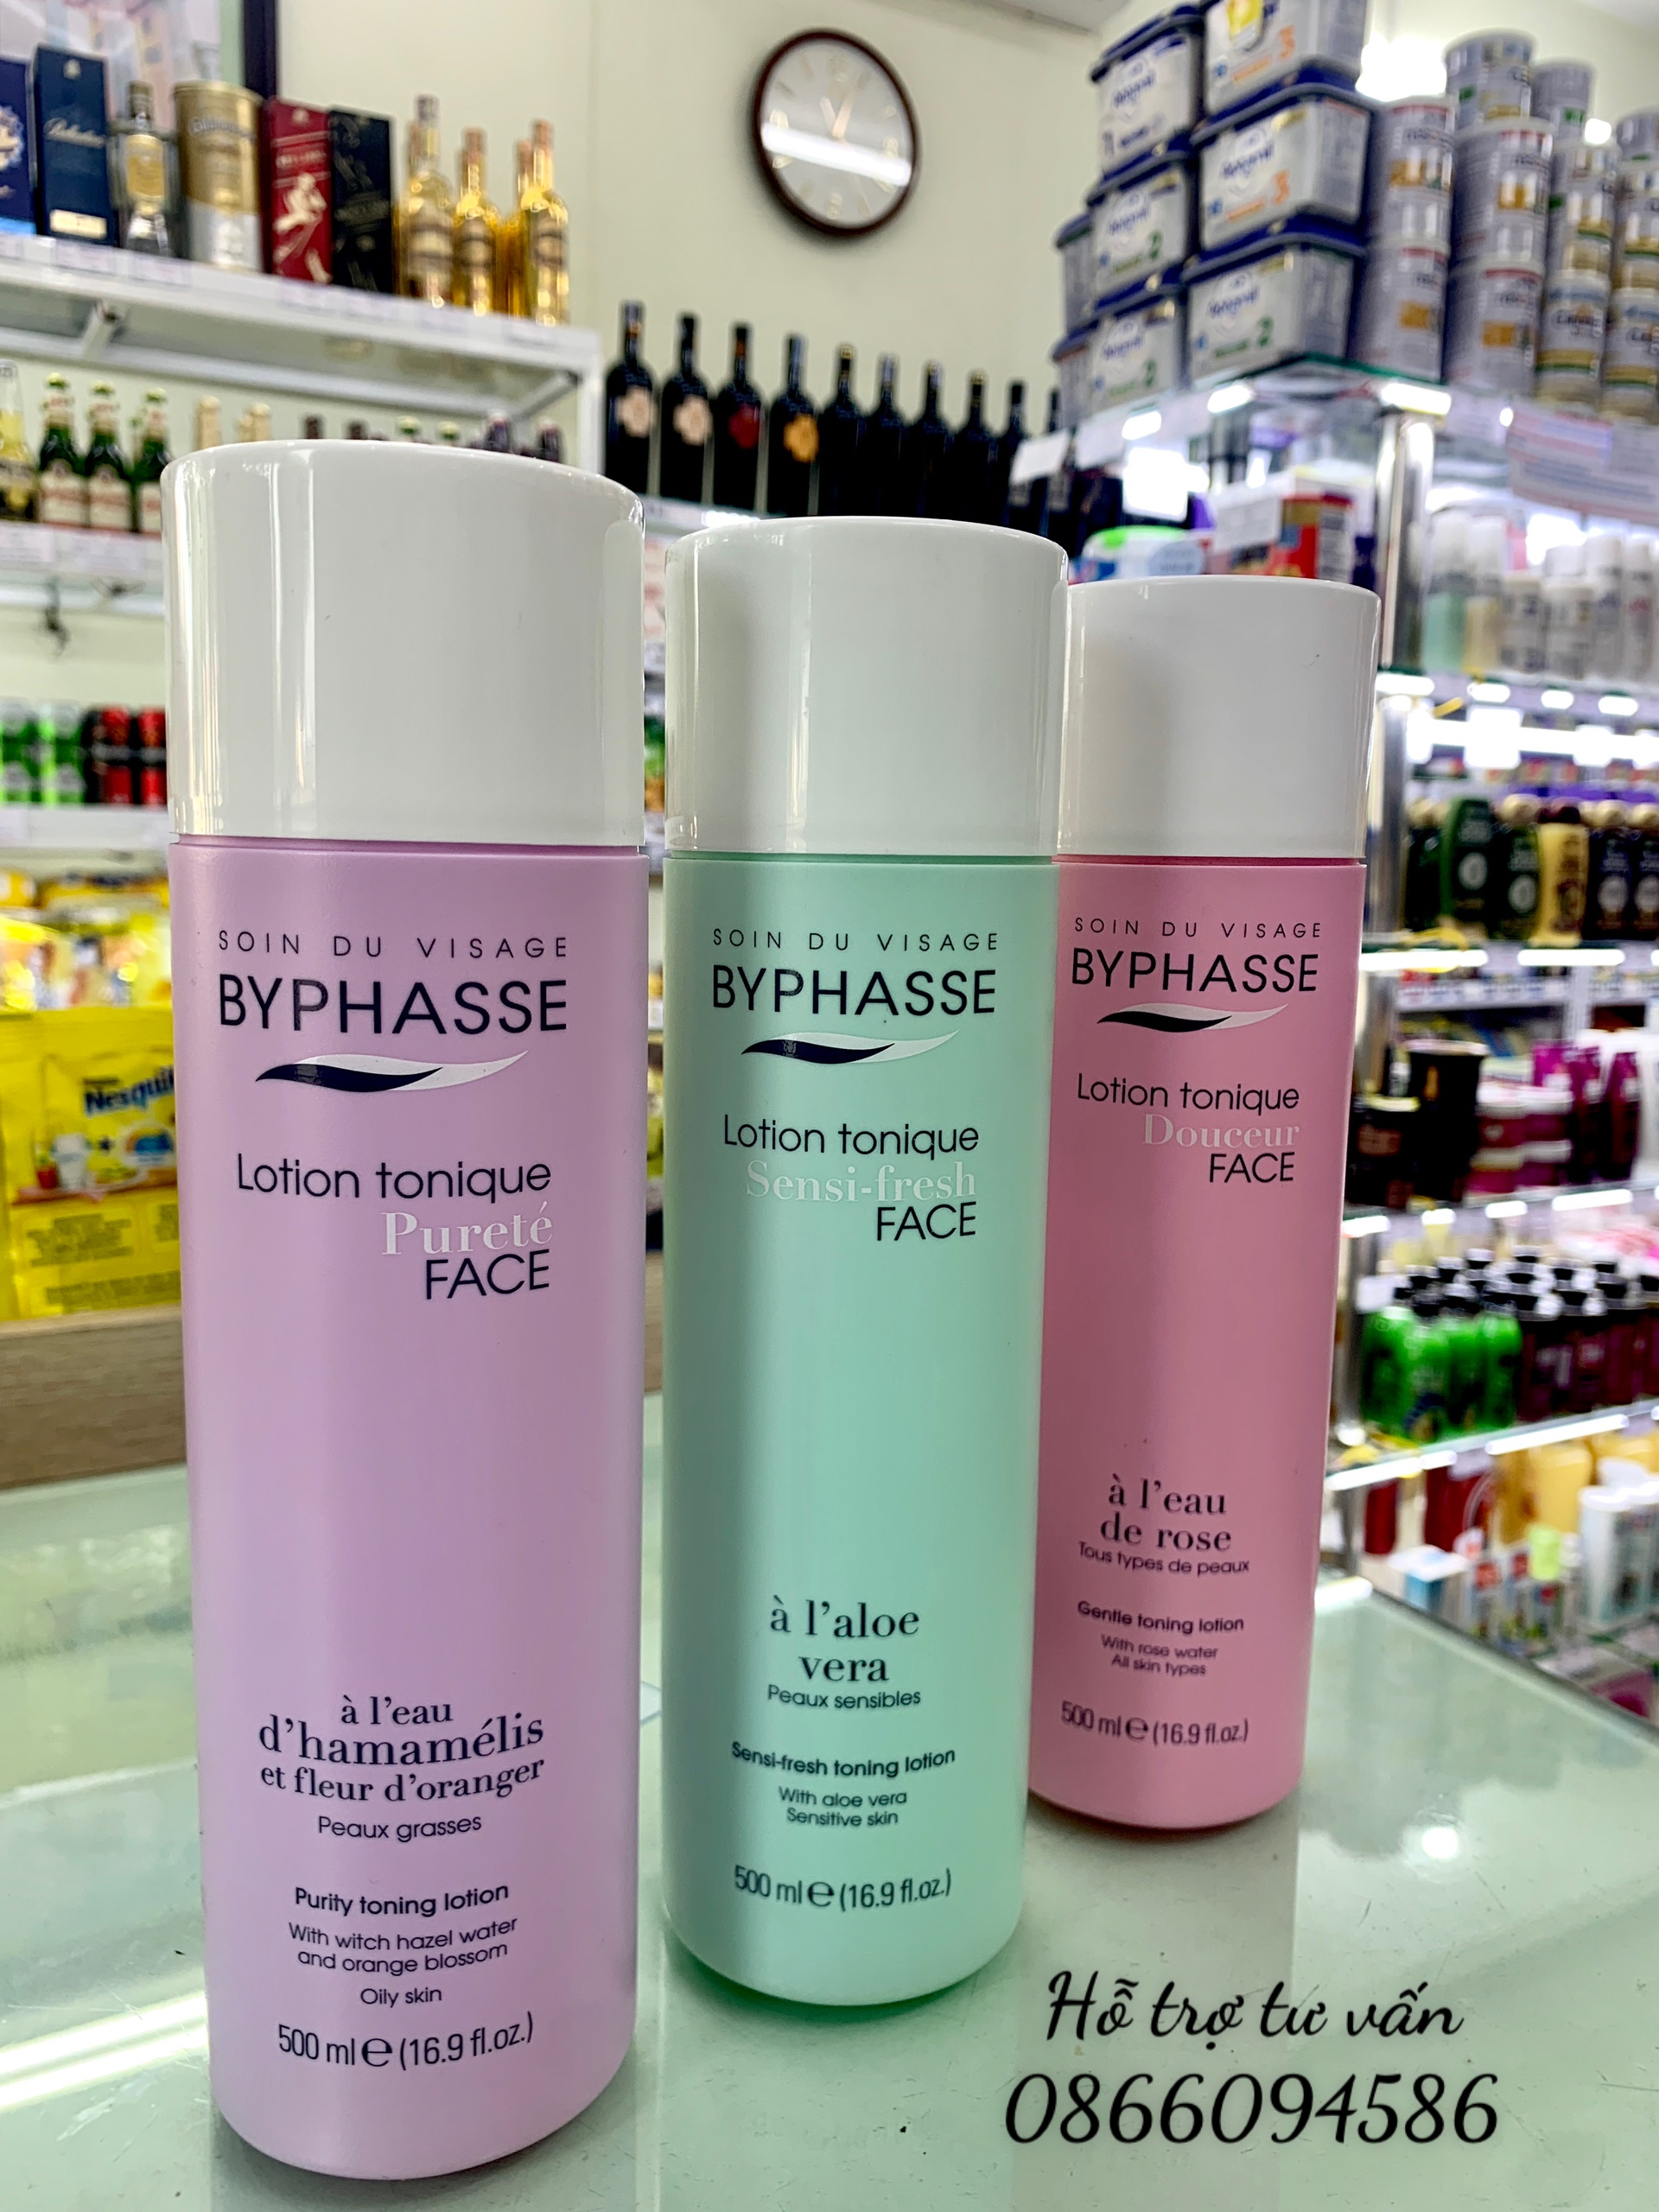 NHH Byphasse  500ml